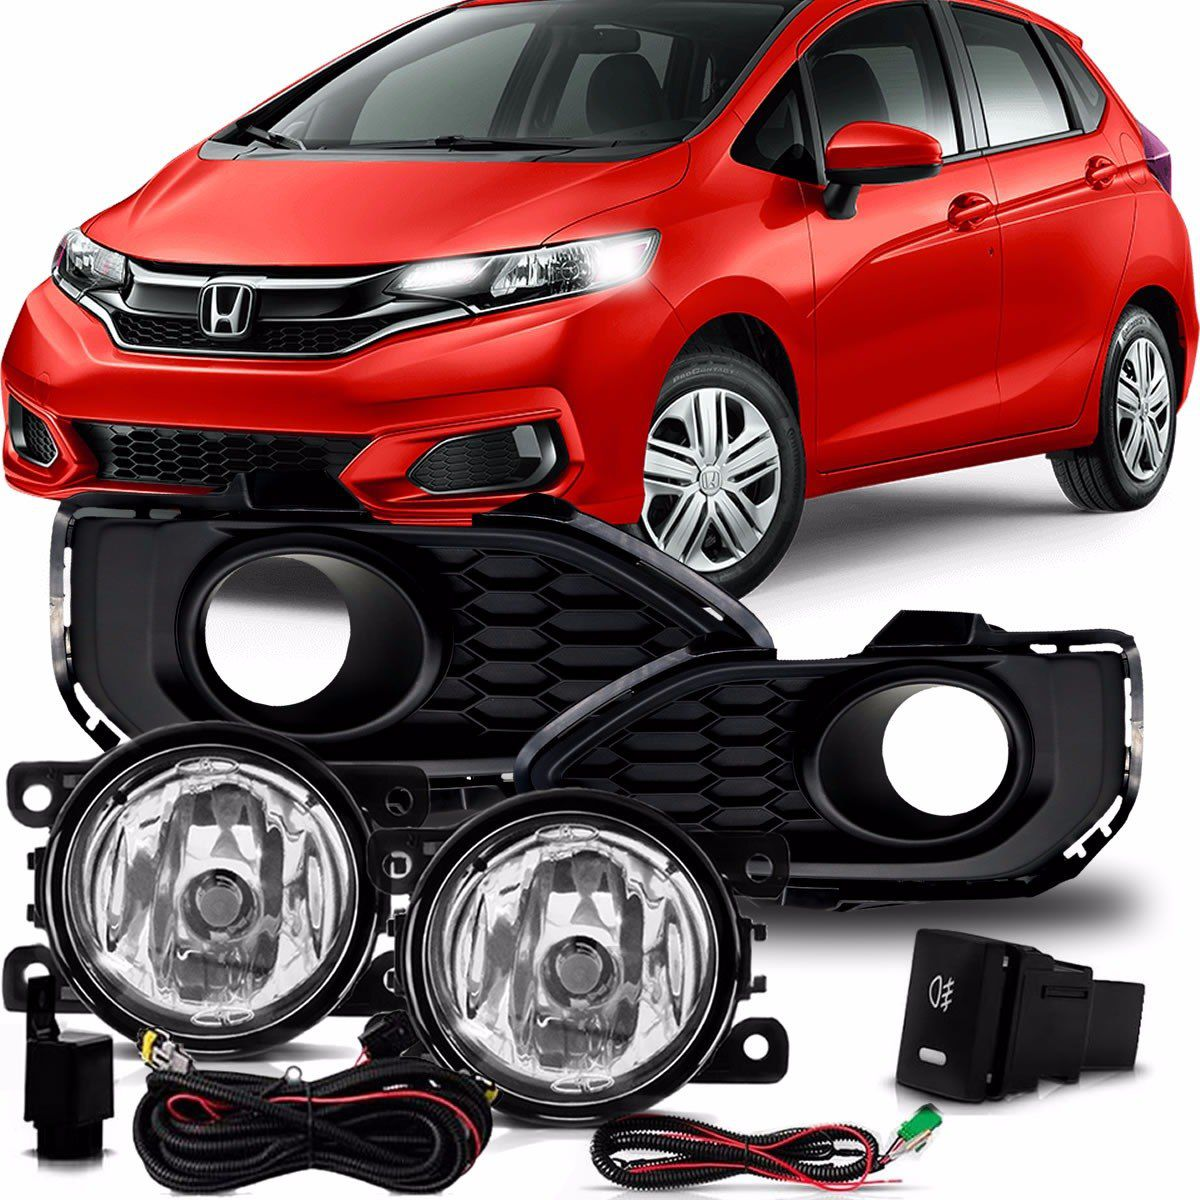 Kit Farol de Milha Neblina Honda New Fit 2018 2019 - Interruptor Modelo Original